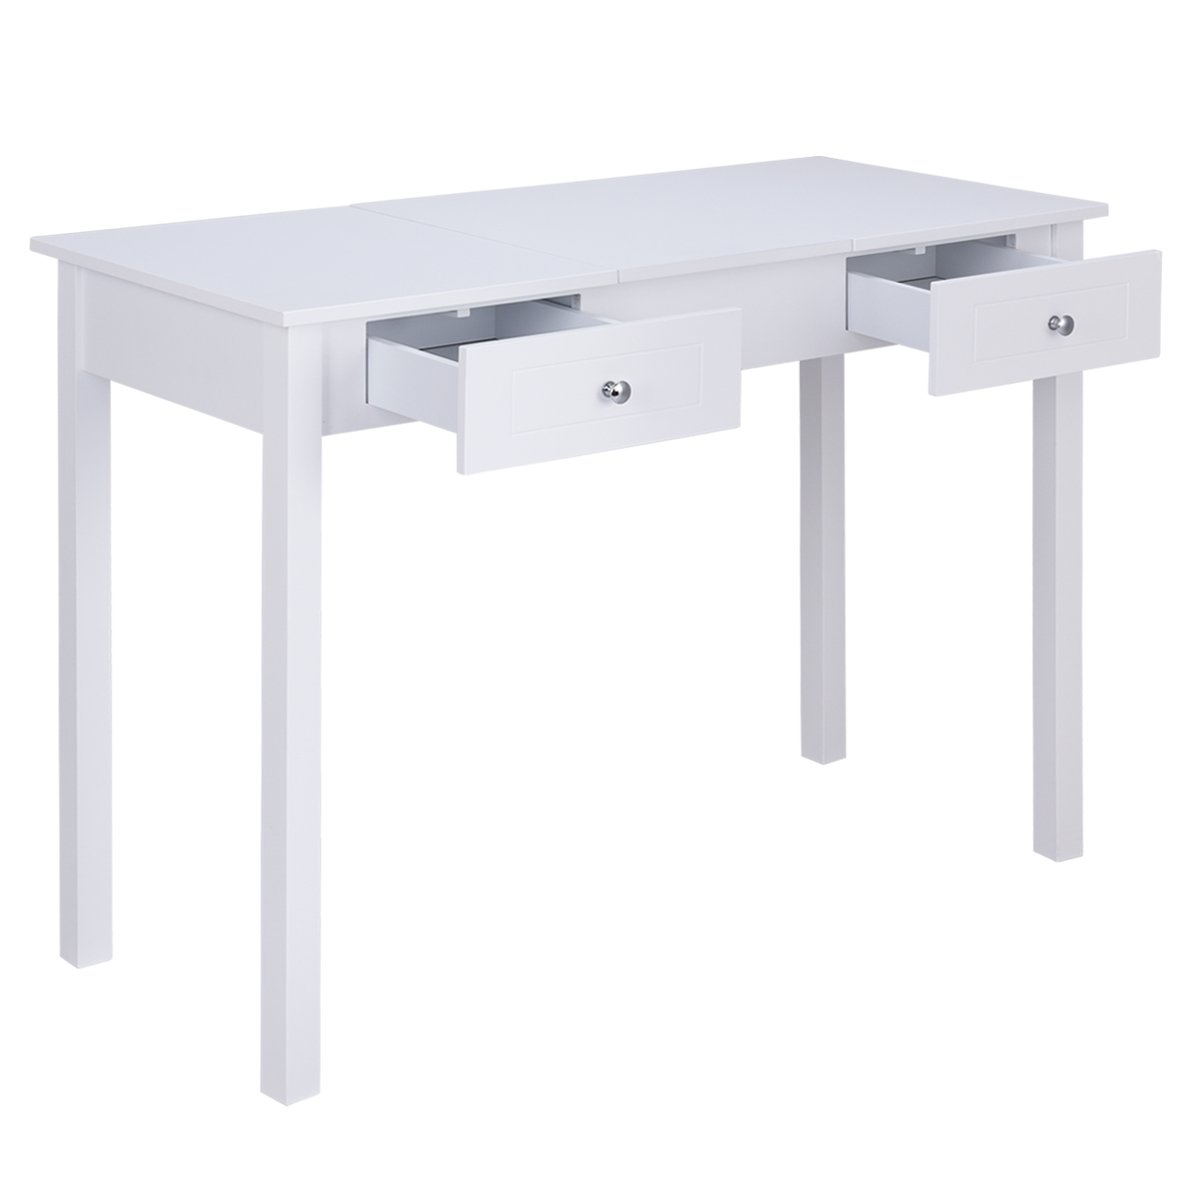 Giantex Vanity Table with Flip Top Mirror with 2 Drawers 1 Removable Organizer Dressing Table Vanity Table, White by Giantex (Image #4)